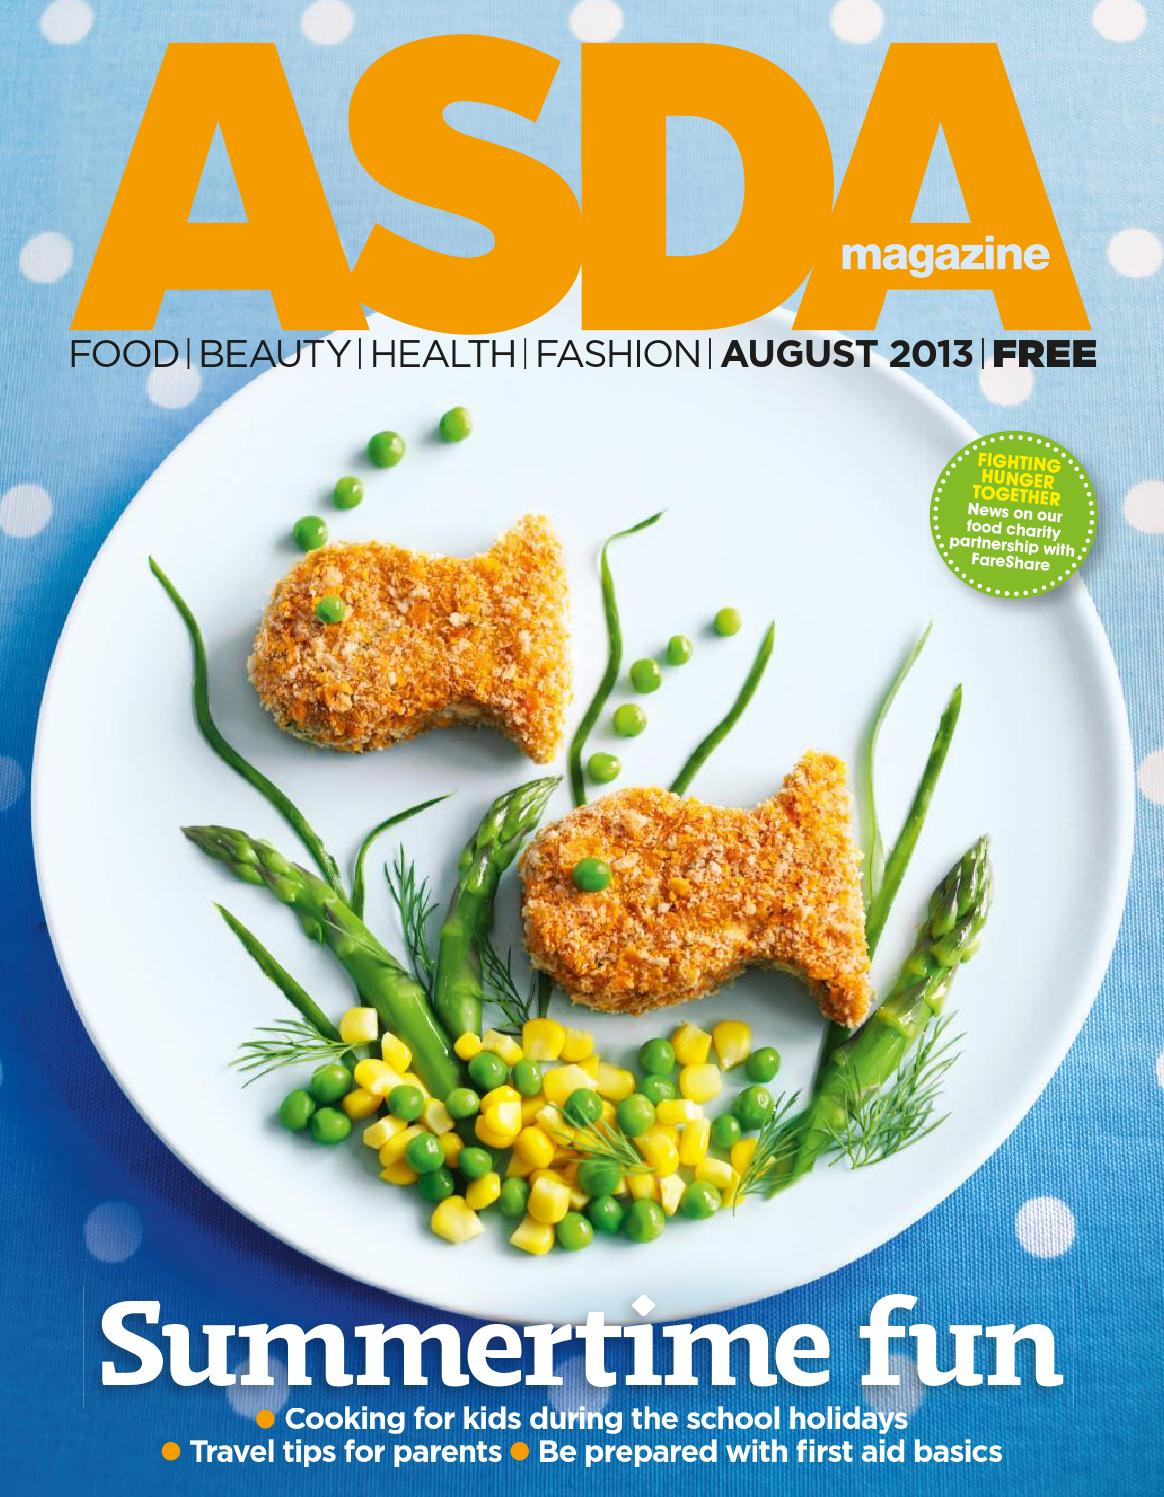 Asda magazine november 2013 by asda issuu solutioingenieria Images